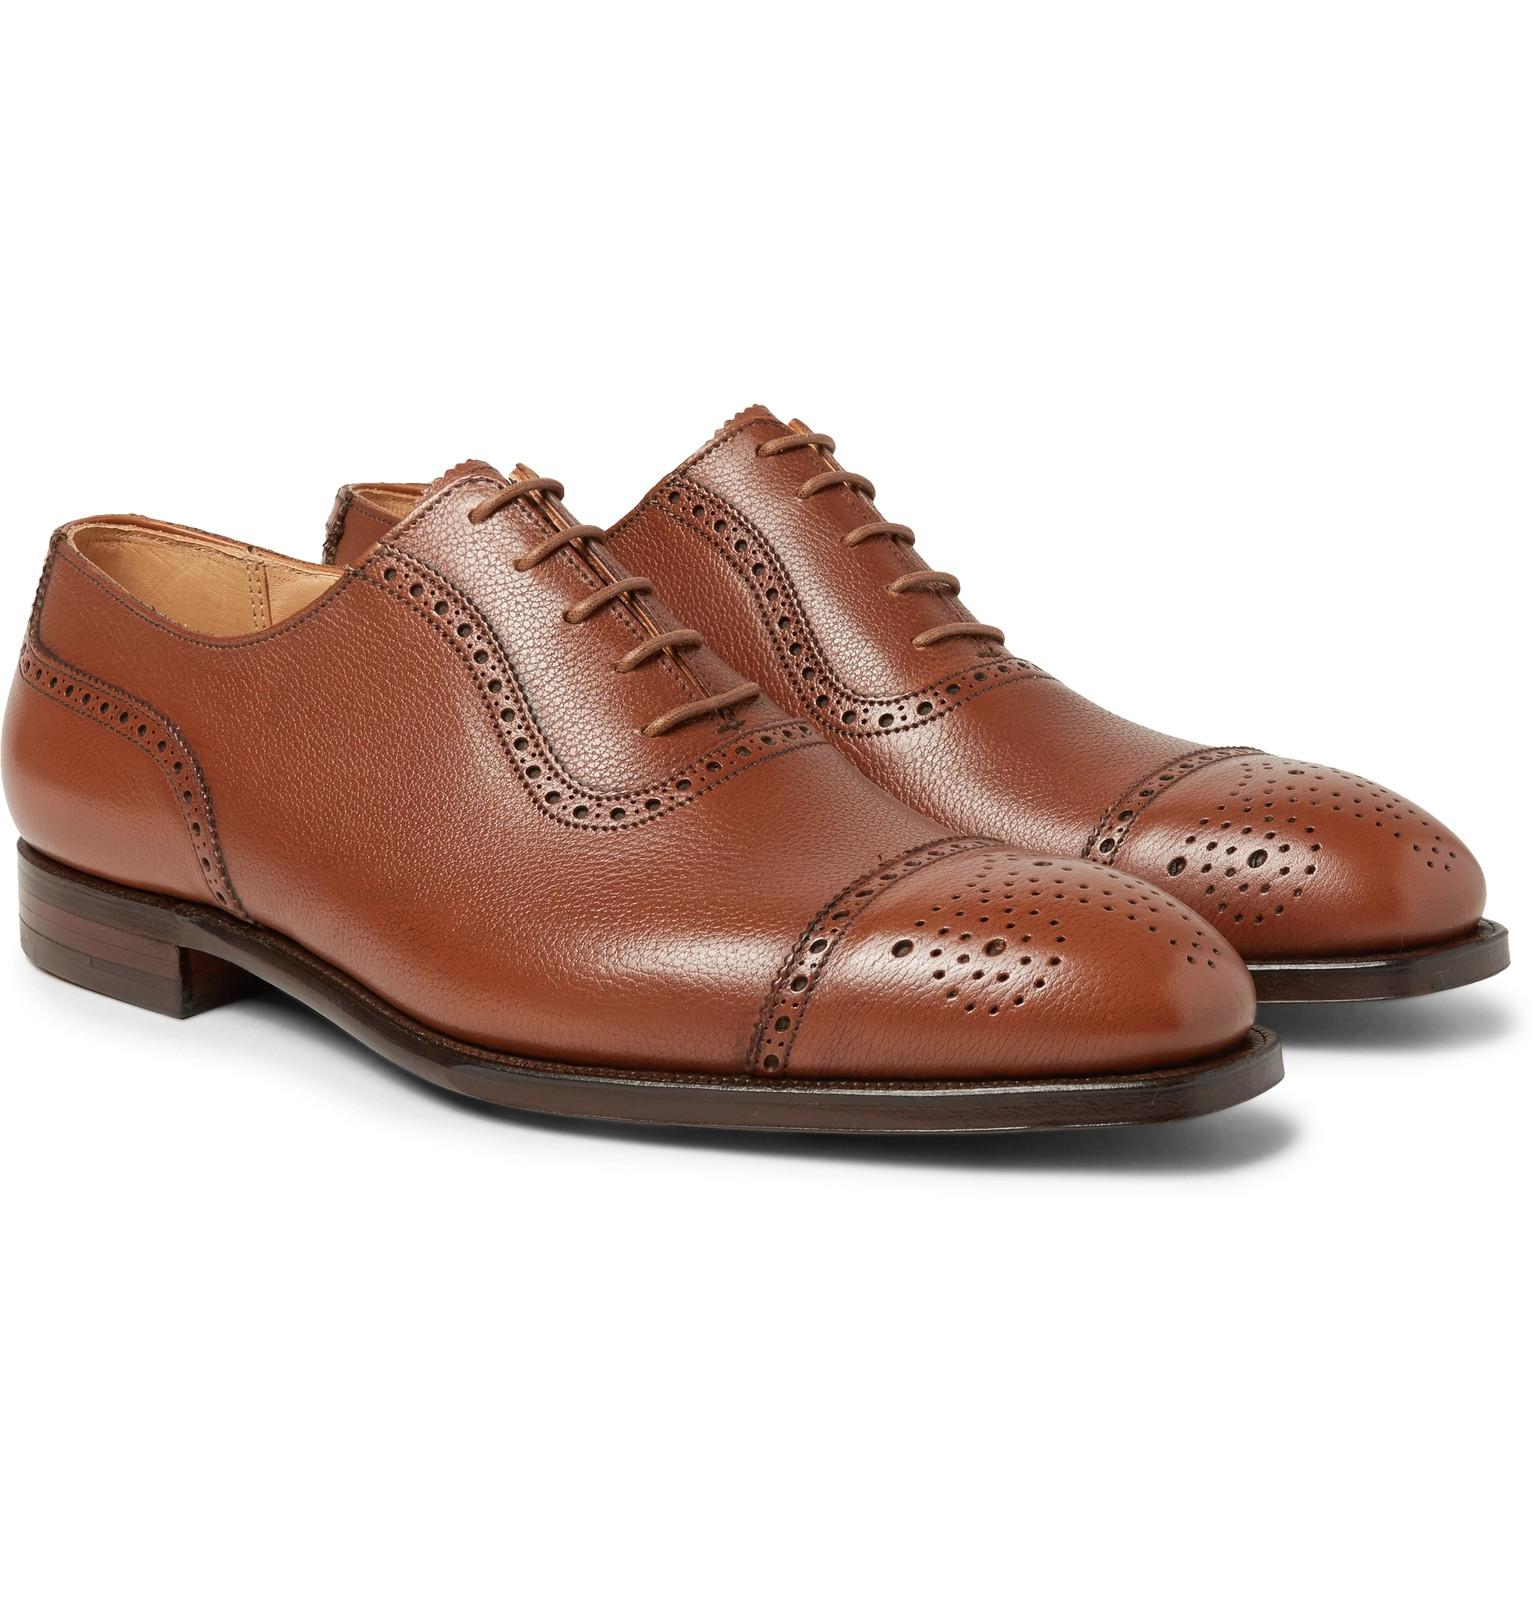 Henry Pebble-grain Leather Wingtip Brogues - Dark brownGeorge Cleverley kMQeVy1